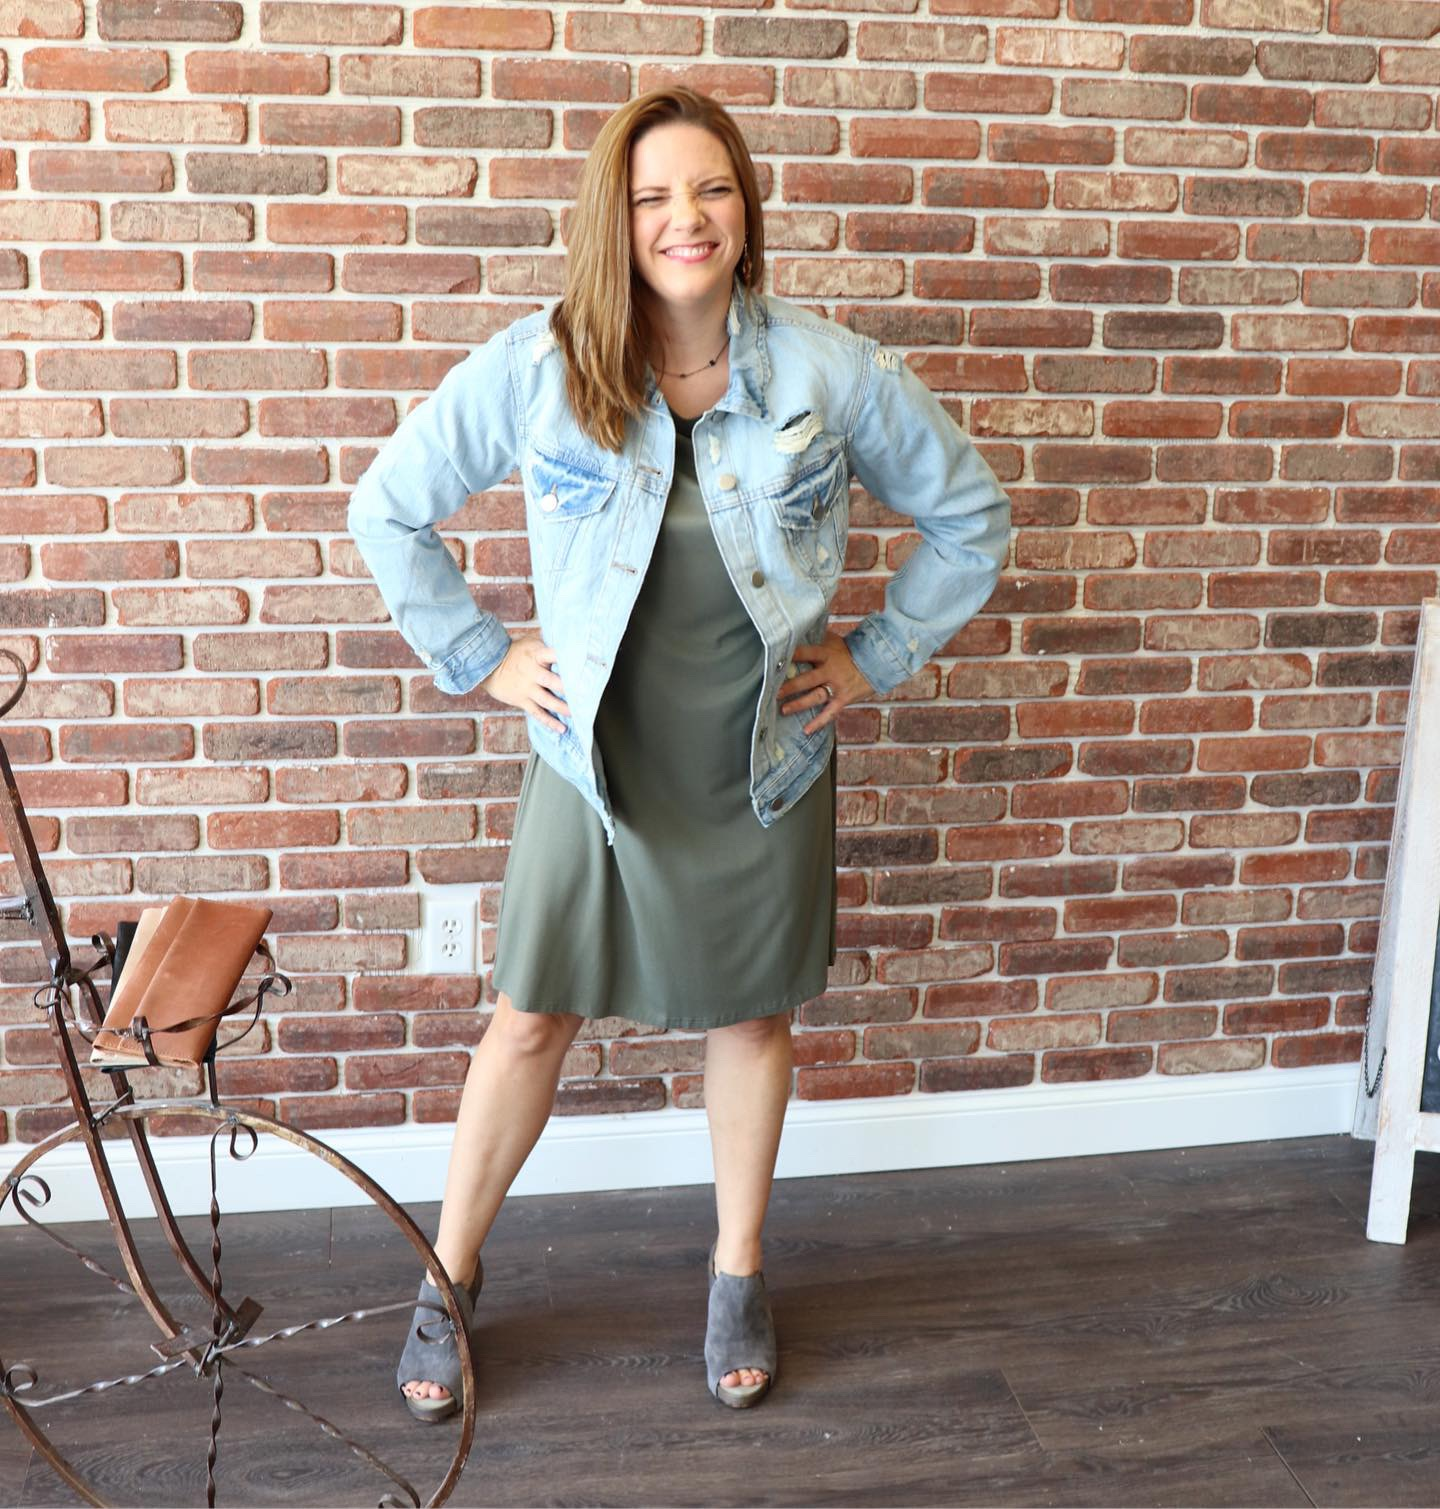 Our favorite denim jacket EVER is here. The color is classic and the distressing adds the perfect flair. Throw it on with your favorite dress for a classic fall look.  This look available in store, and will be online soon! You can also call or DM us on Instagram to place an order.